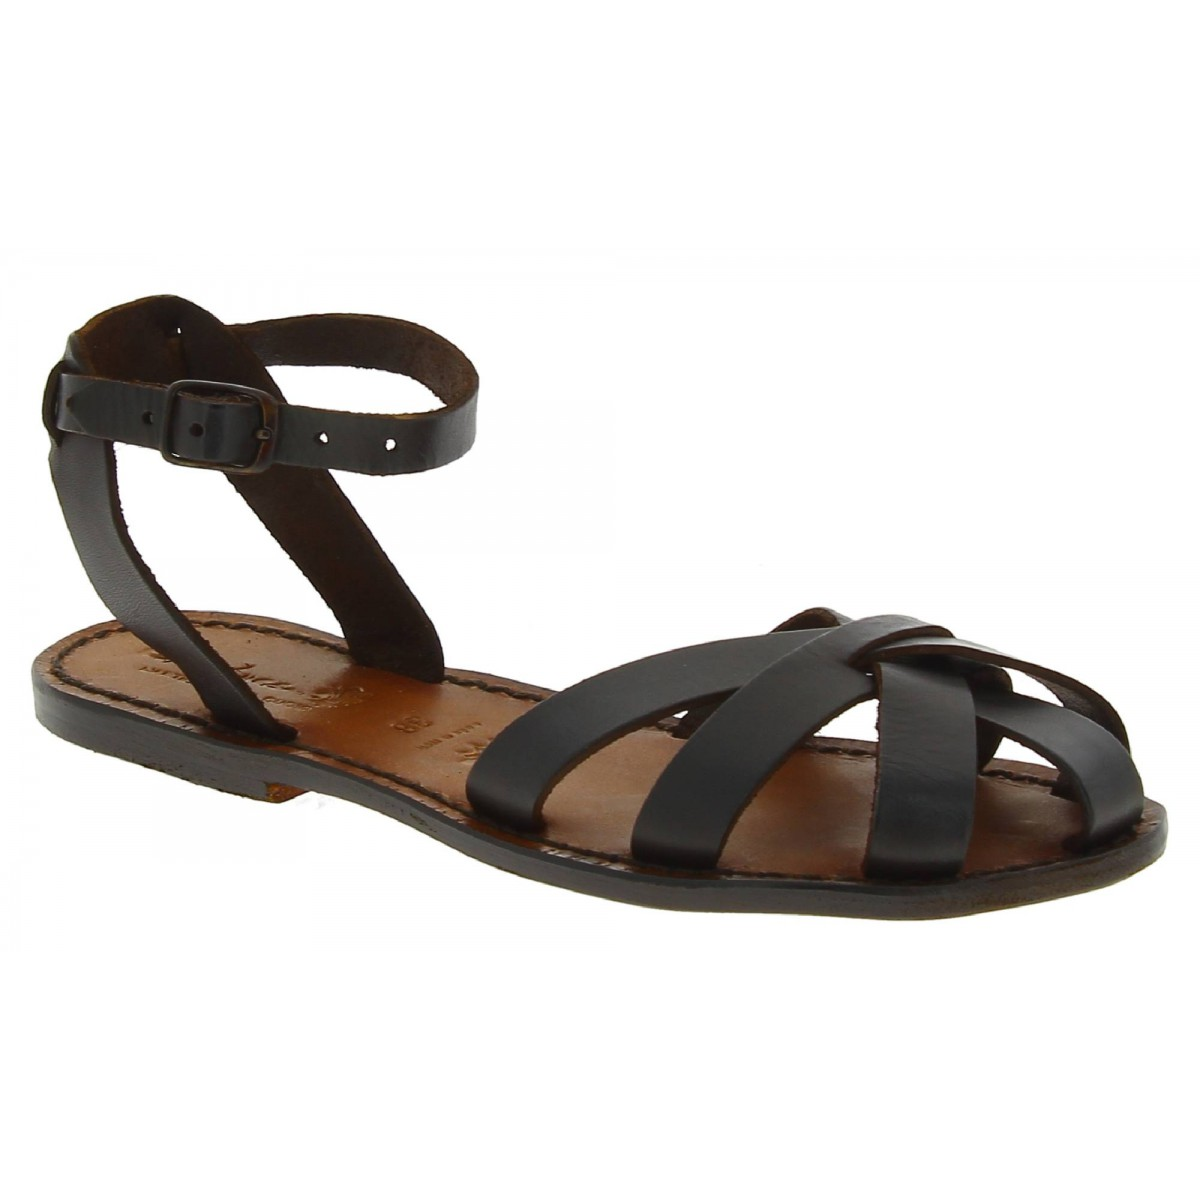 d624135a8161 Handmade dark brown flat sandals for women real italian leather. Loading  zoom